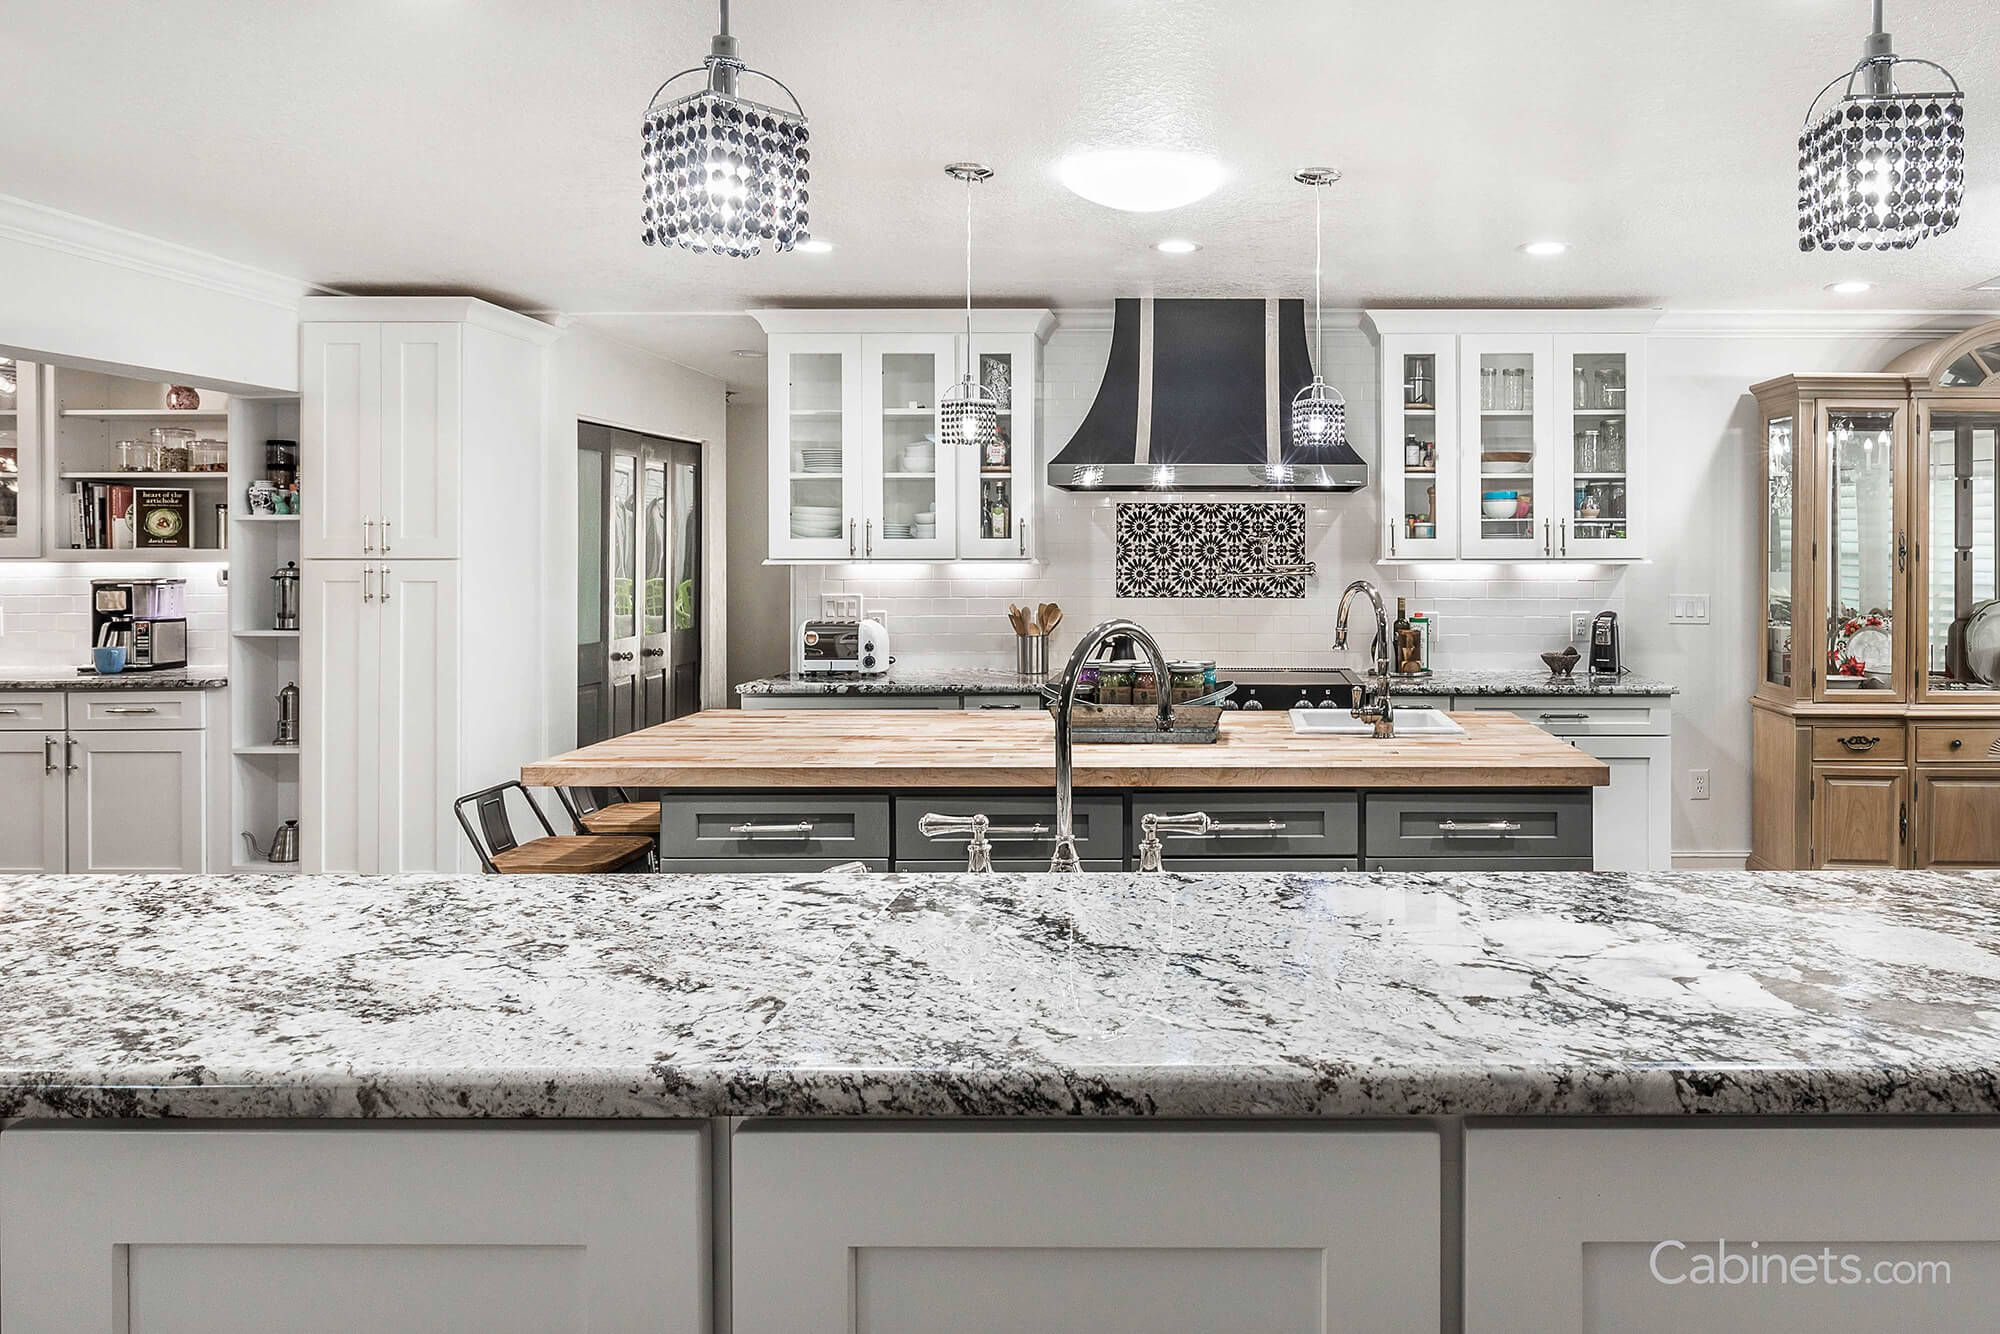 Island Cabinets Are Different Color Than Wall Cabinets Counter Surface Is Different Too Online Kitchen Cabinets Luxury Kitchen Design Kitchen Remodel Small